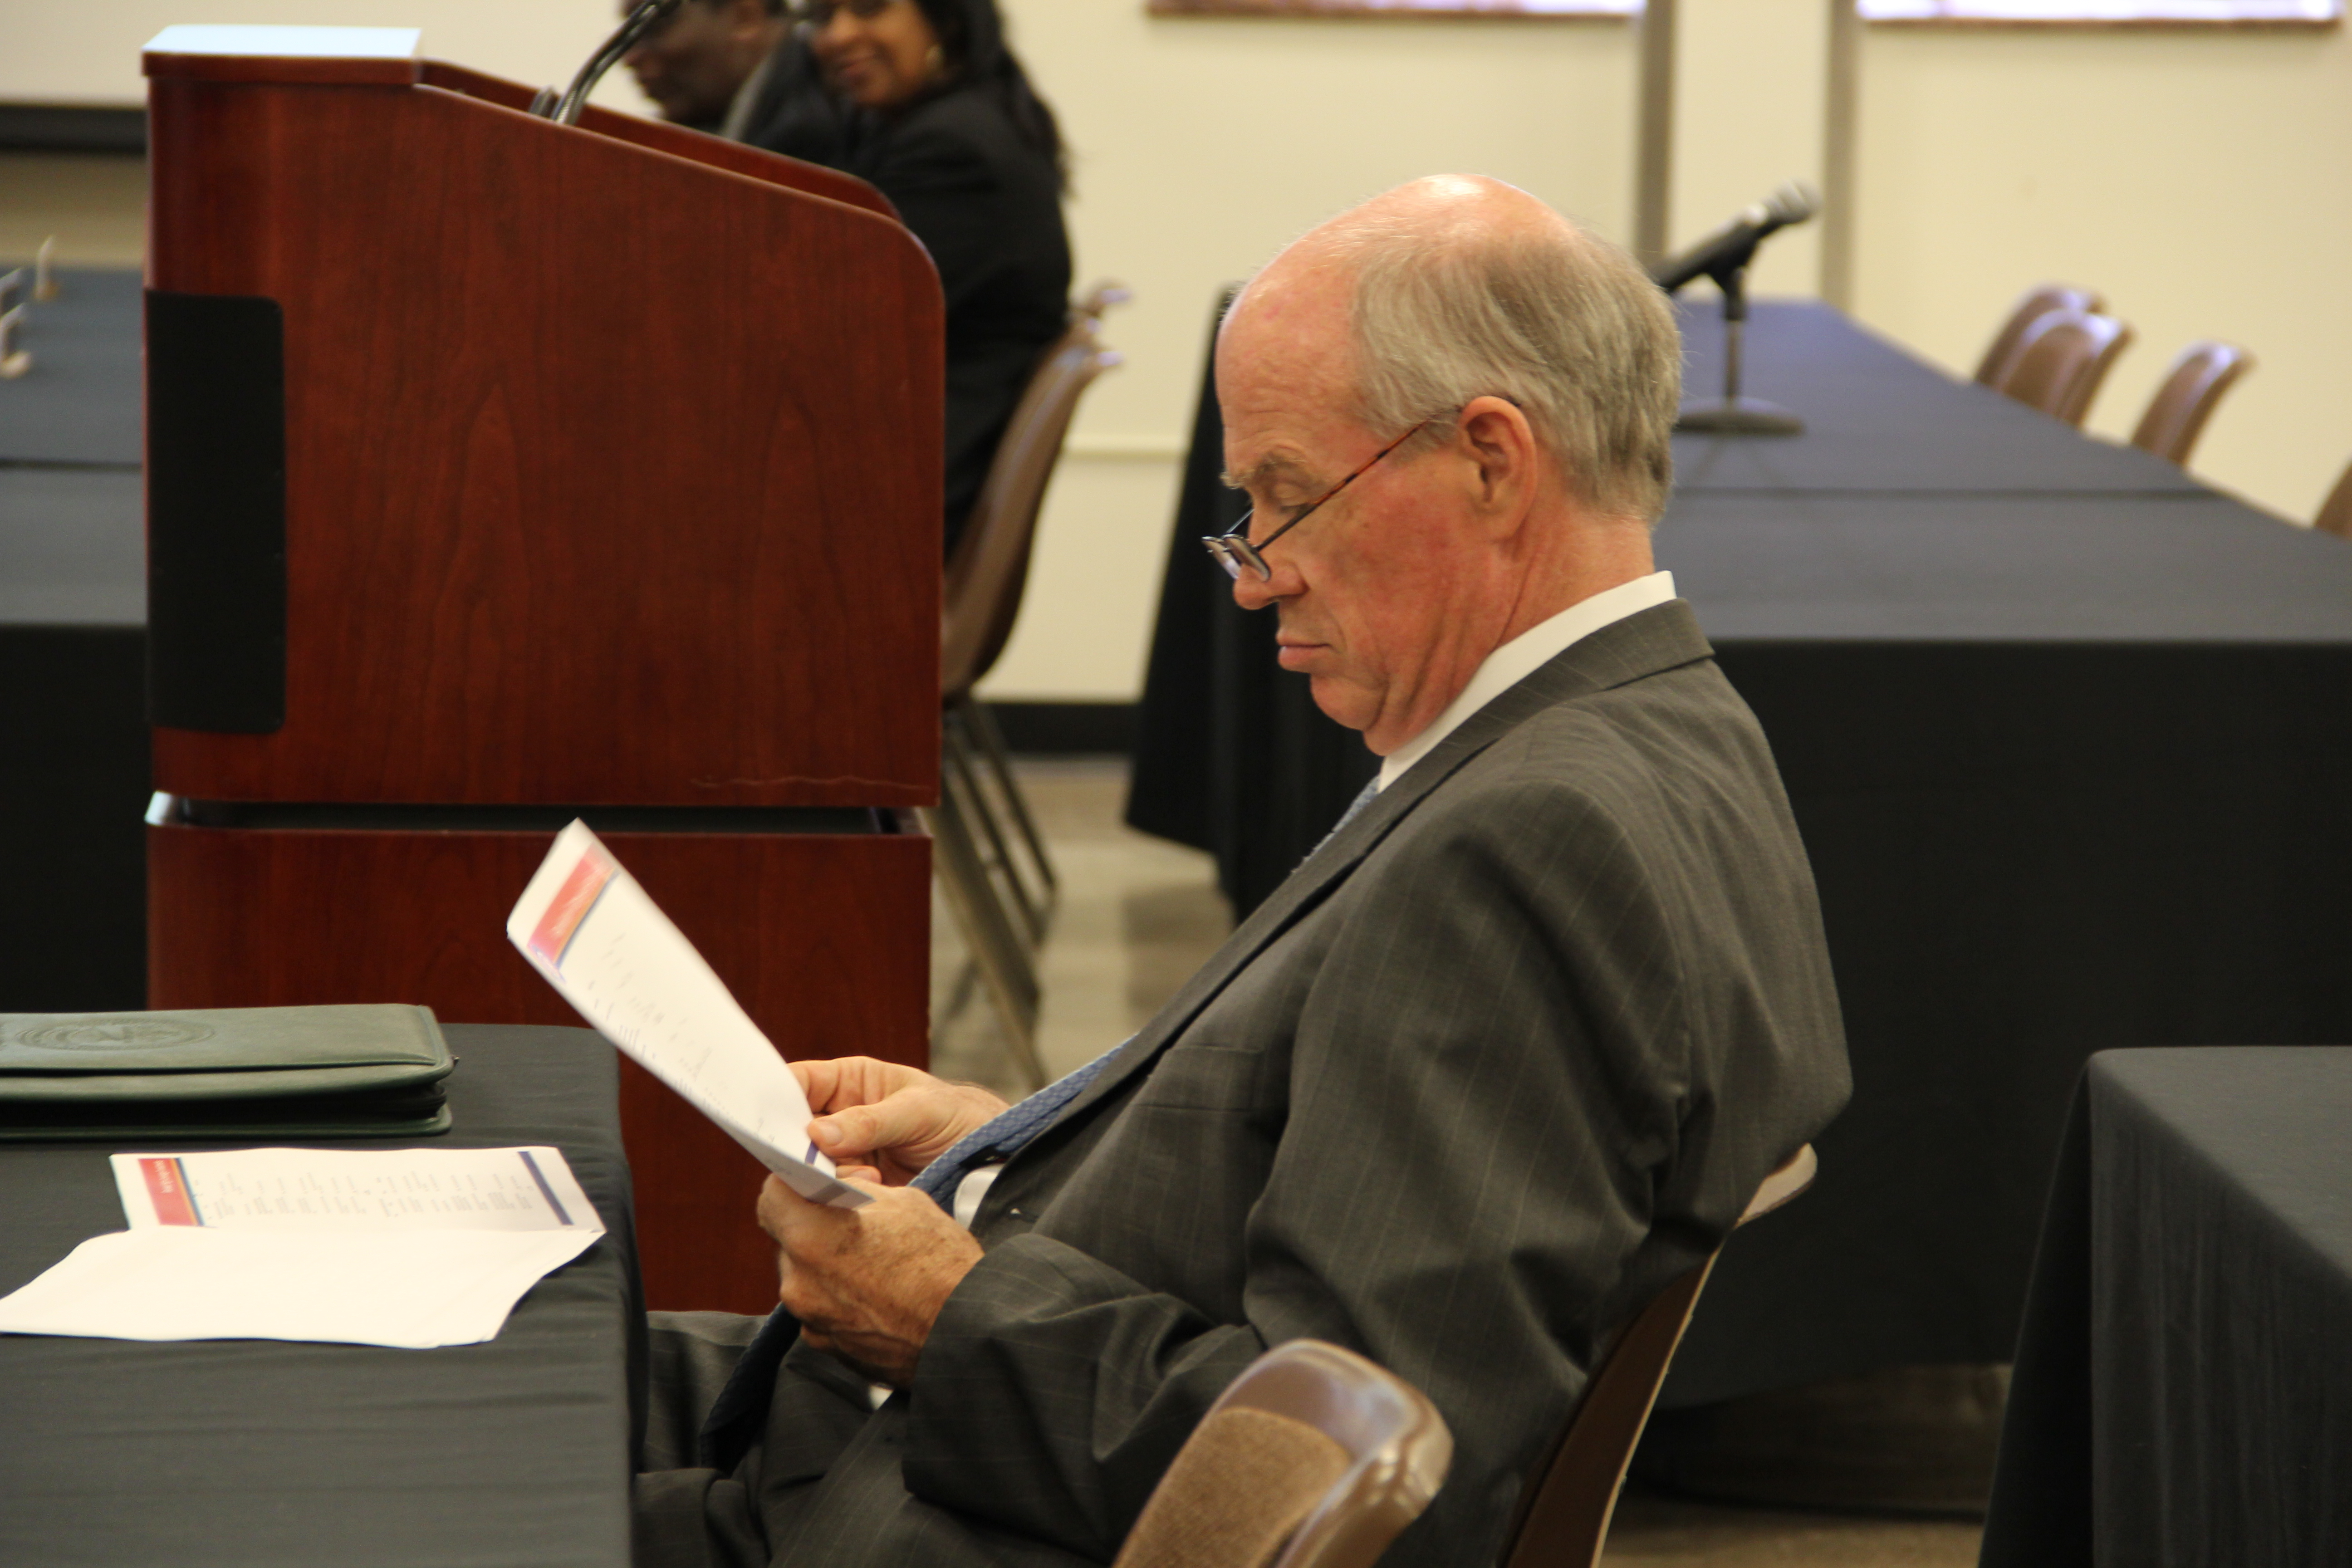 Shelby County budget director Mike Swift studies information presented by leaders of Shelby County Schools during a budget hearing on July 5.